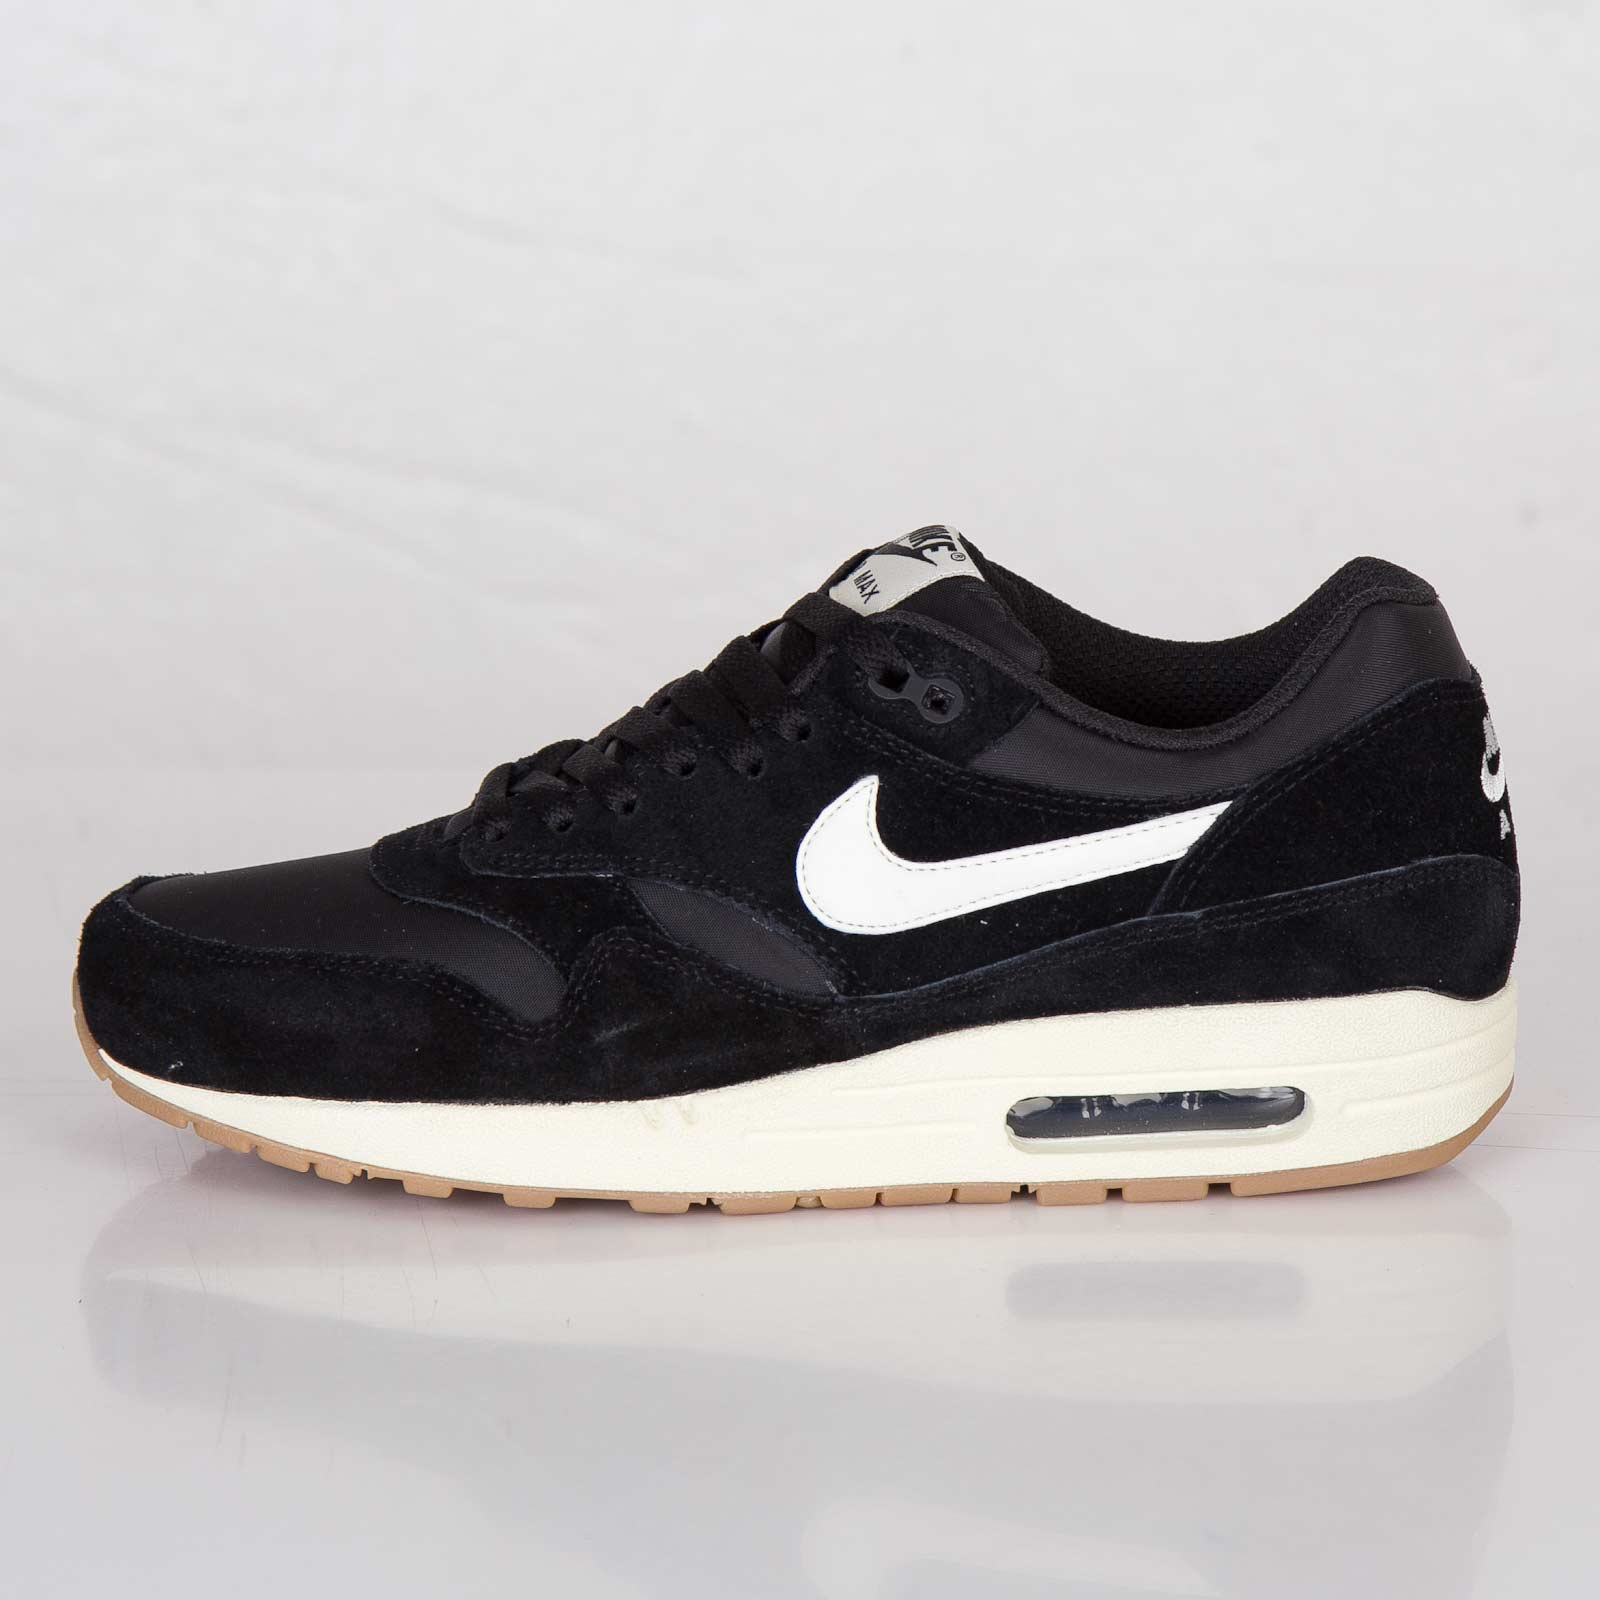 Nike Air Max 1 Essential 537383 011 Sneakersnstuff